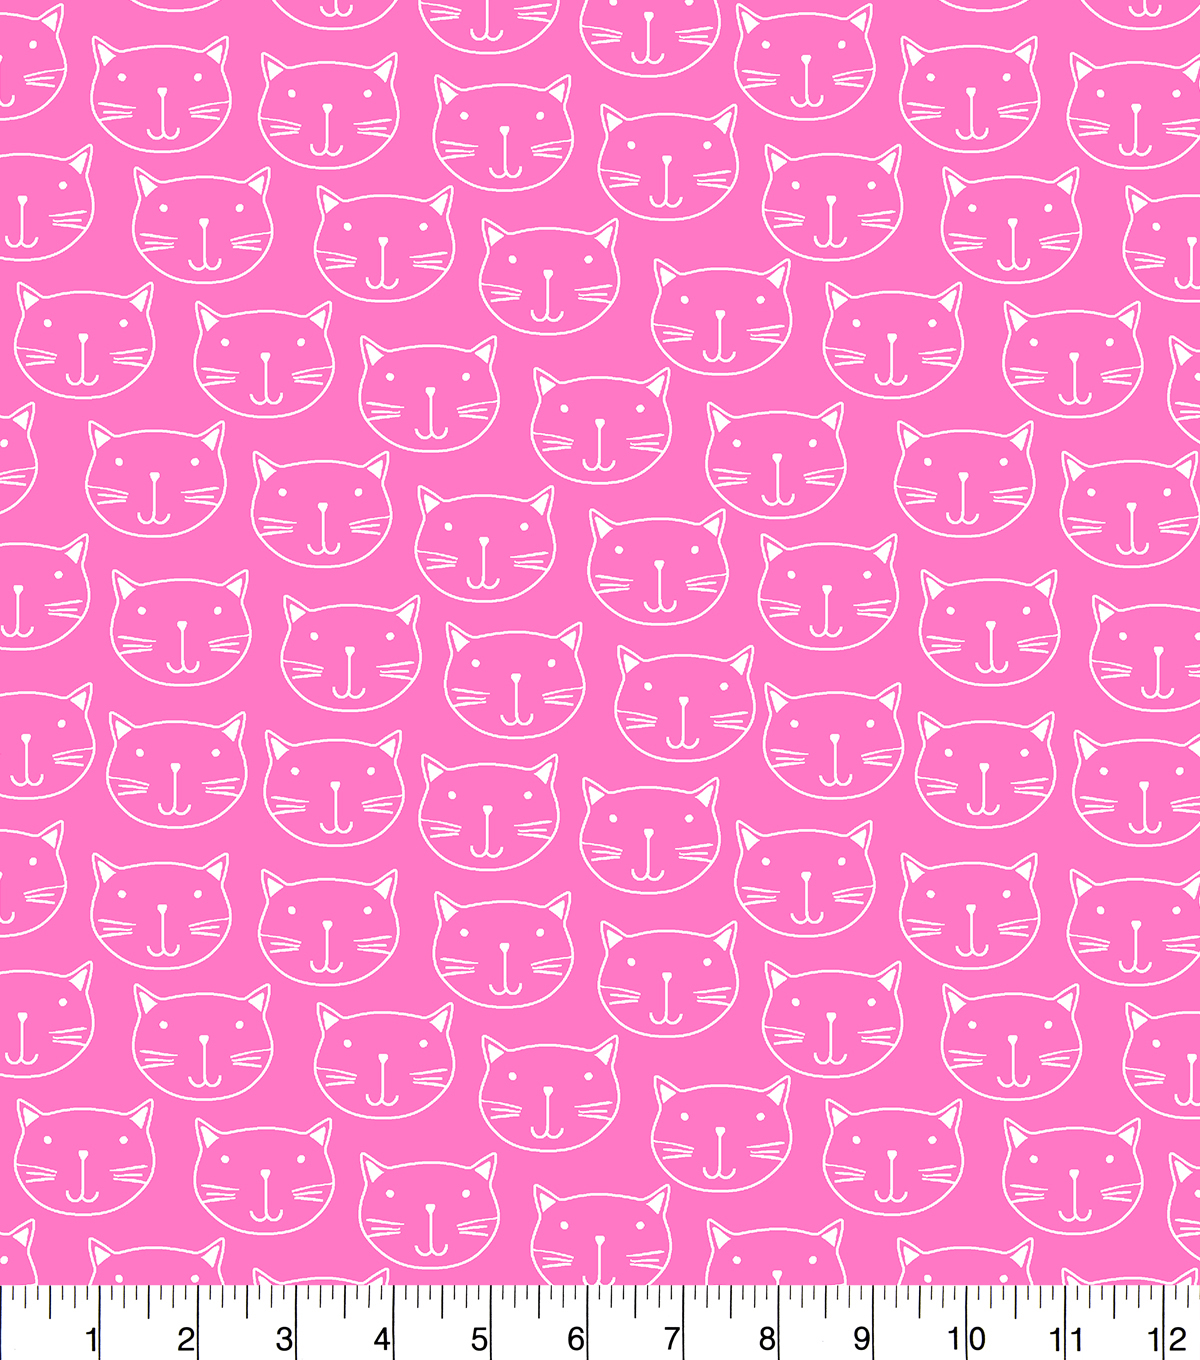 Snuggle Flannel Fabric-Cats Faces On Pink